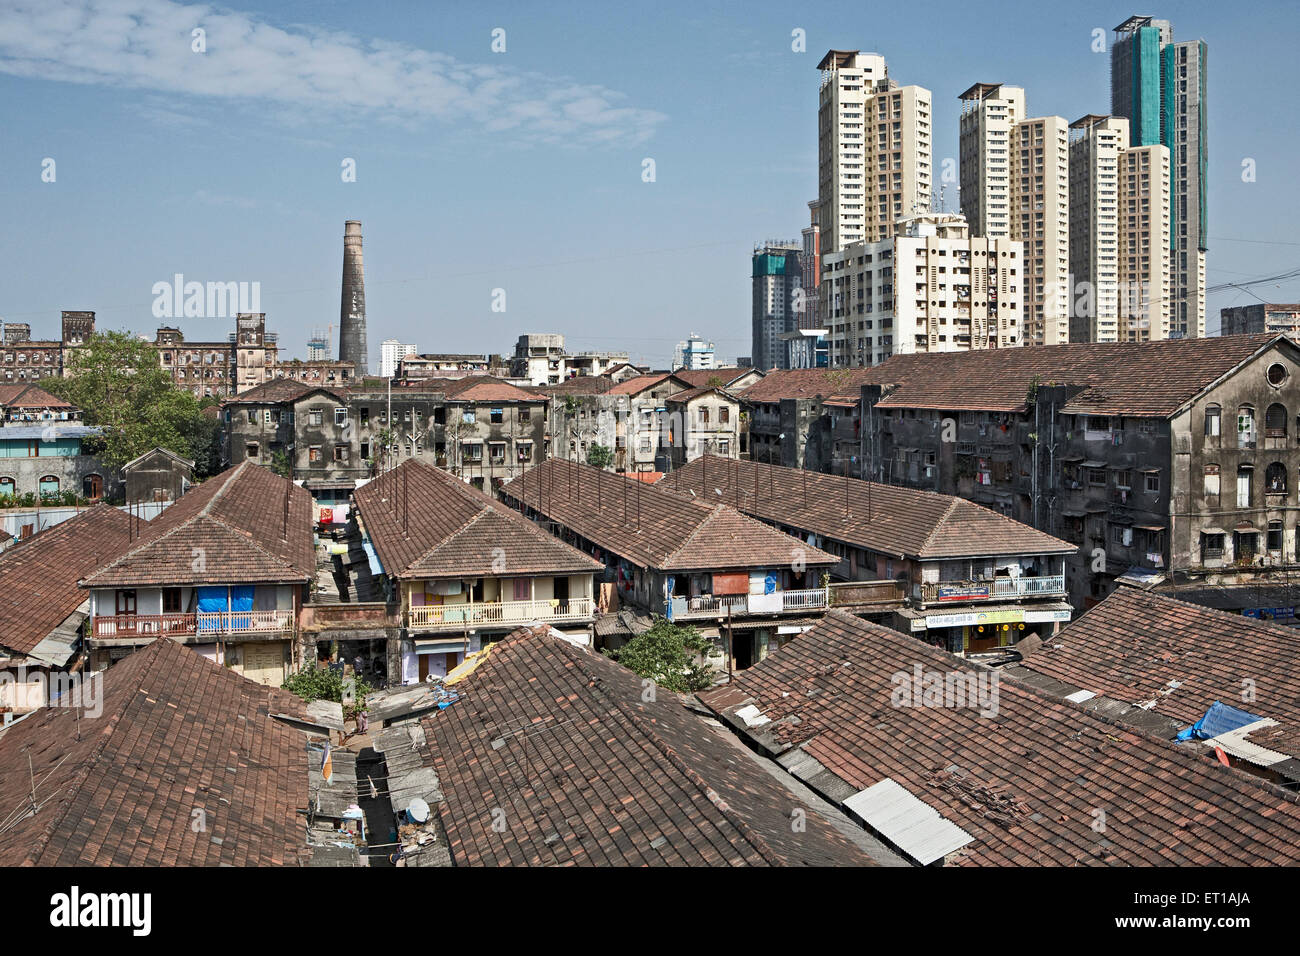 Highrise buildings mills and chawls Mumbai India Asia - Stock Image